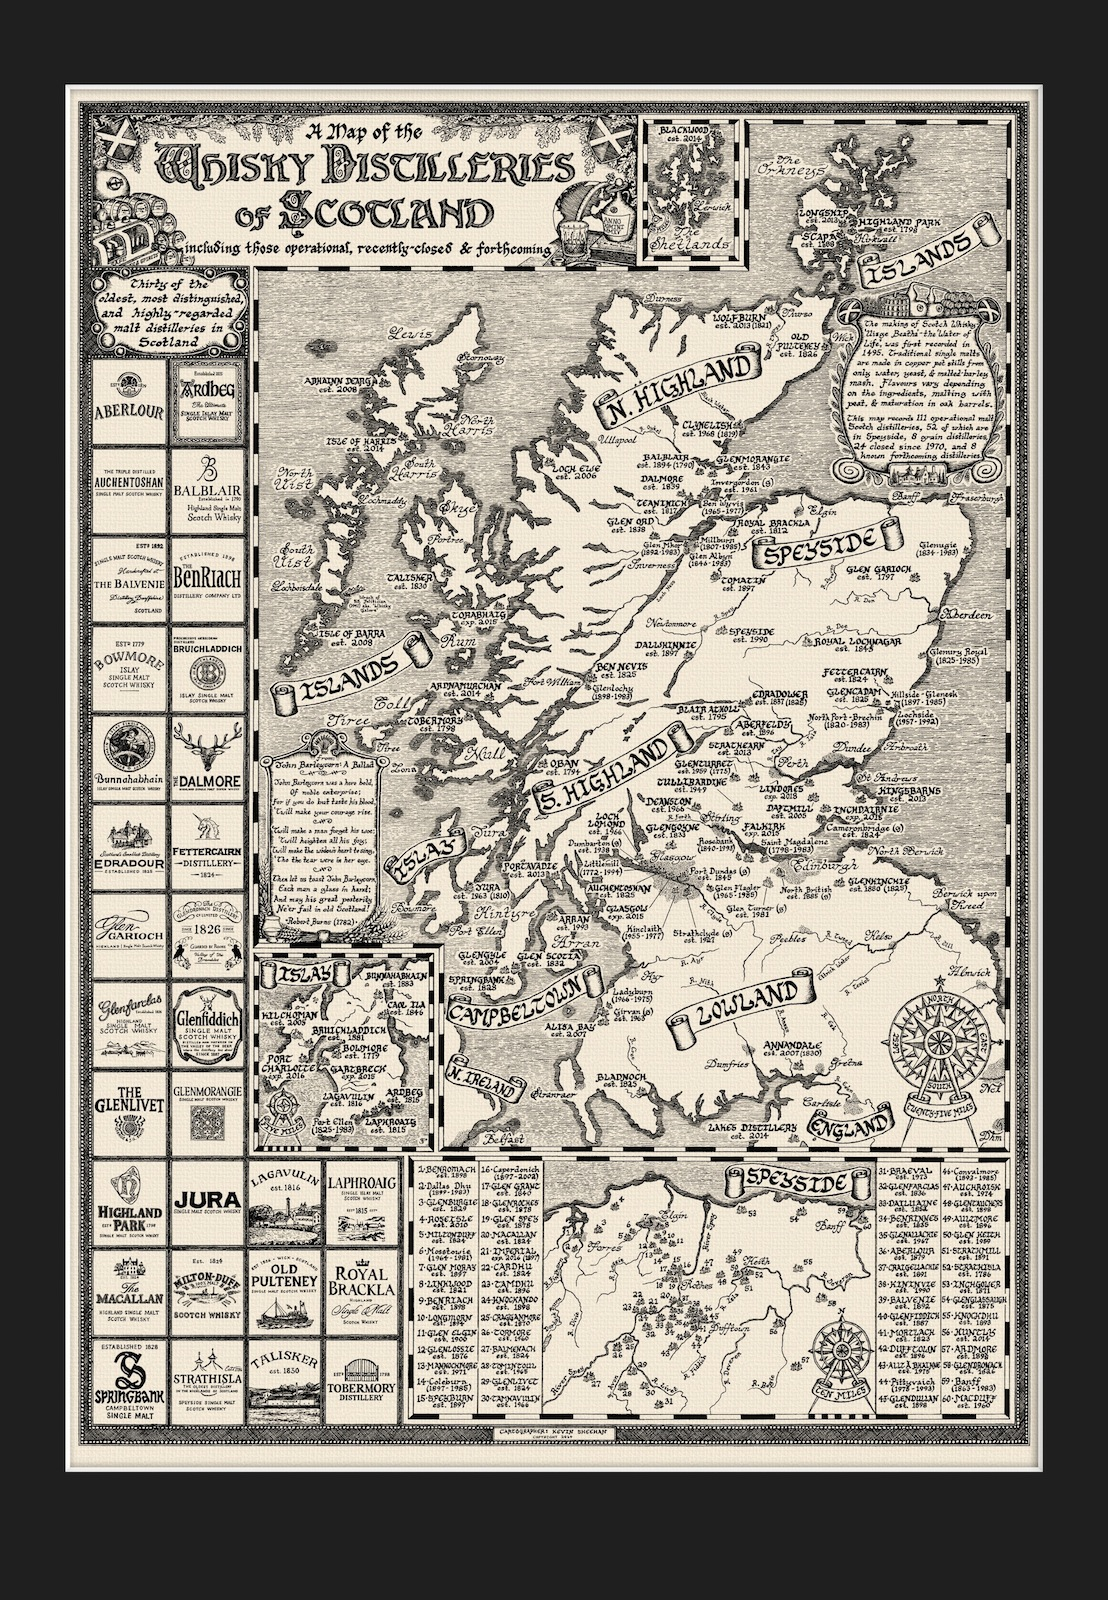 WhiskyIntelligence.com » Blog Archive » The New Map of the ... on scotland castles map, scotland lochs map, scotland golf map, scotland hostels map, scotland agriculture map, scotland airports map, scotland attractions map, scotland whisky regions map, scotland mountains map, scotland ferries map,